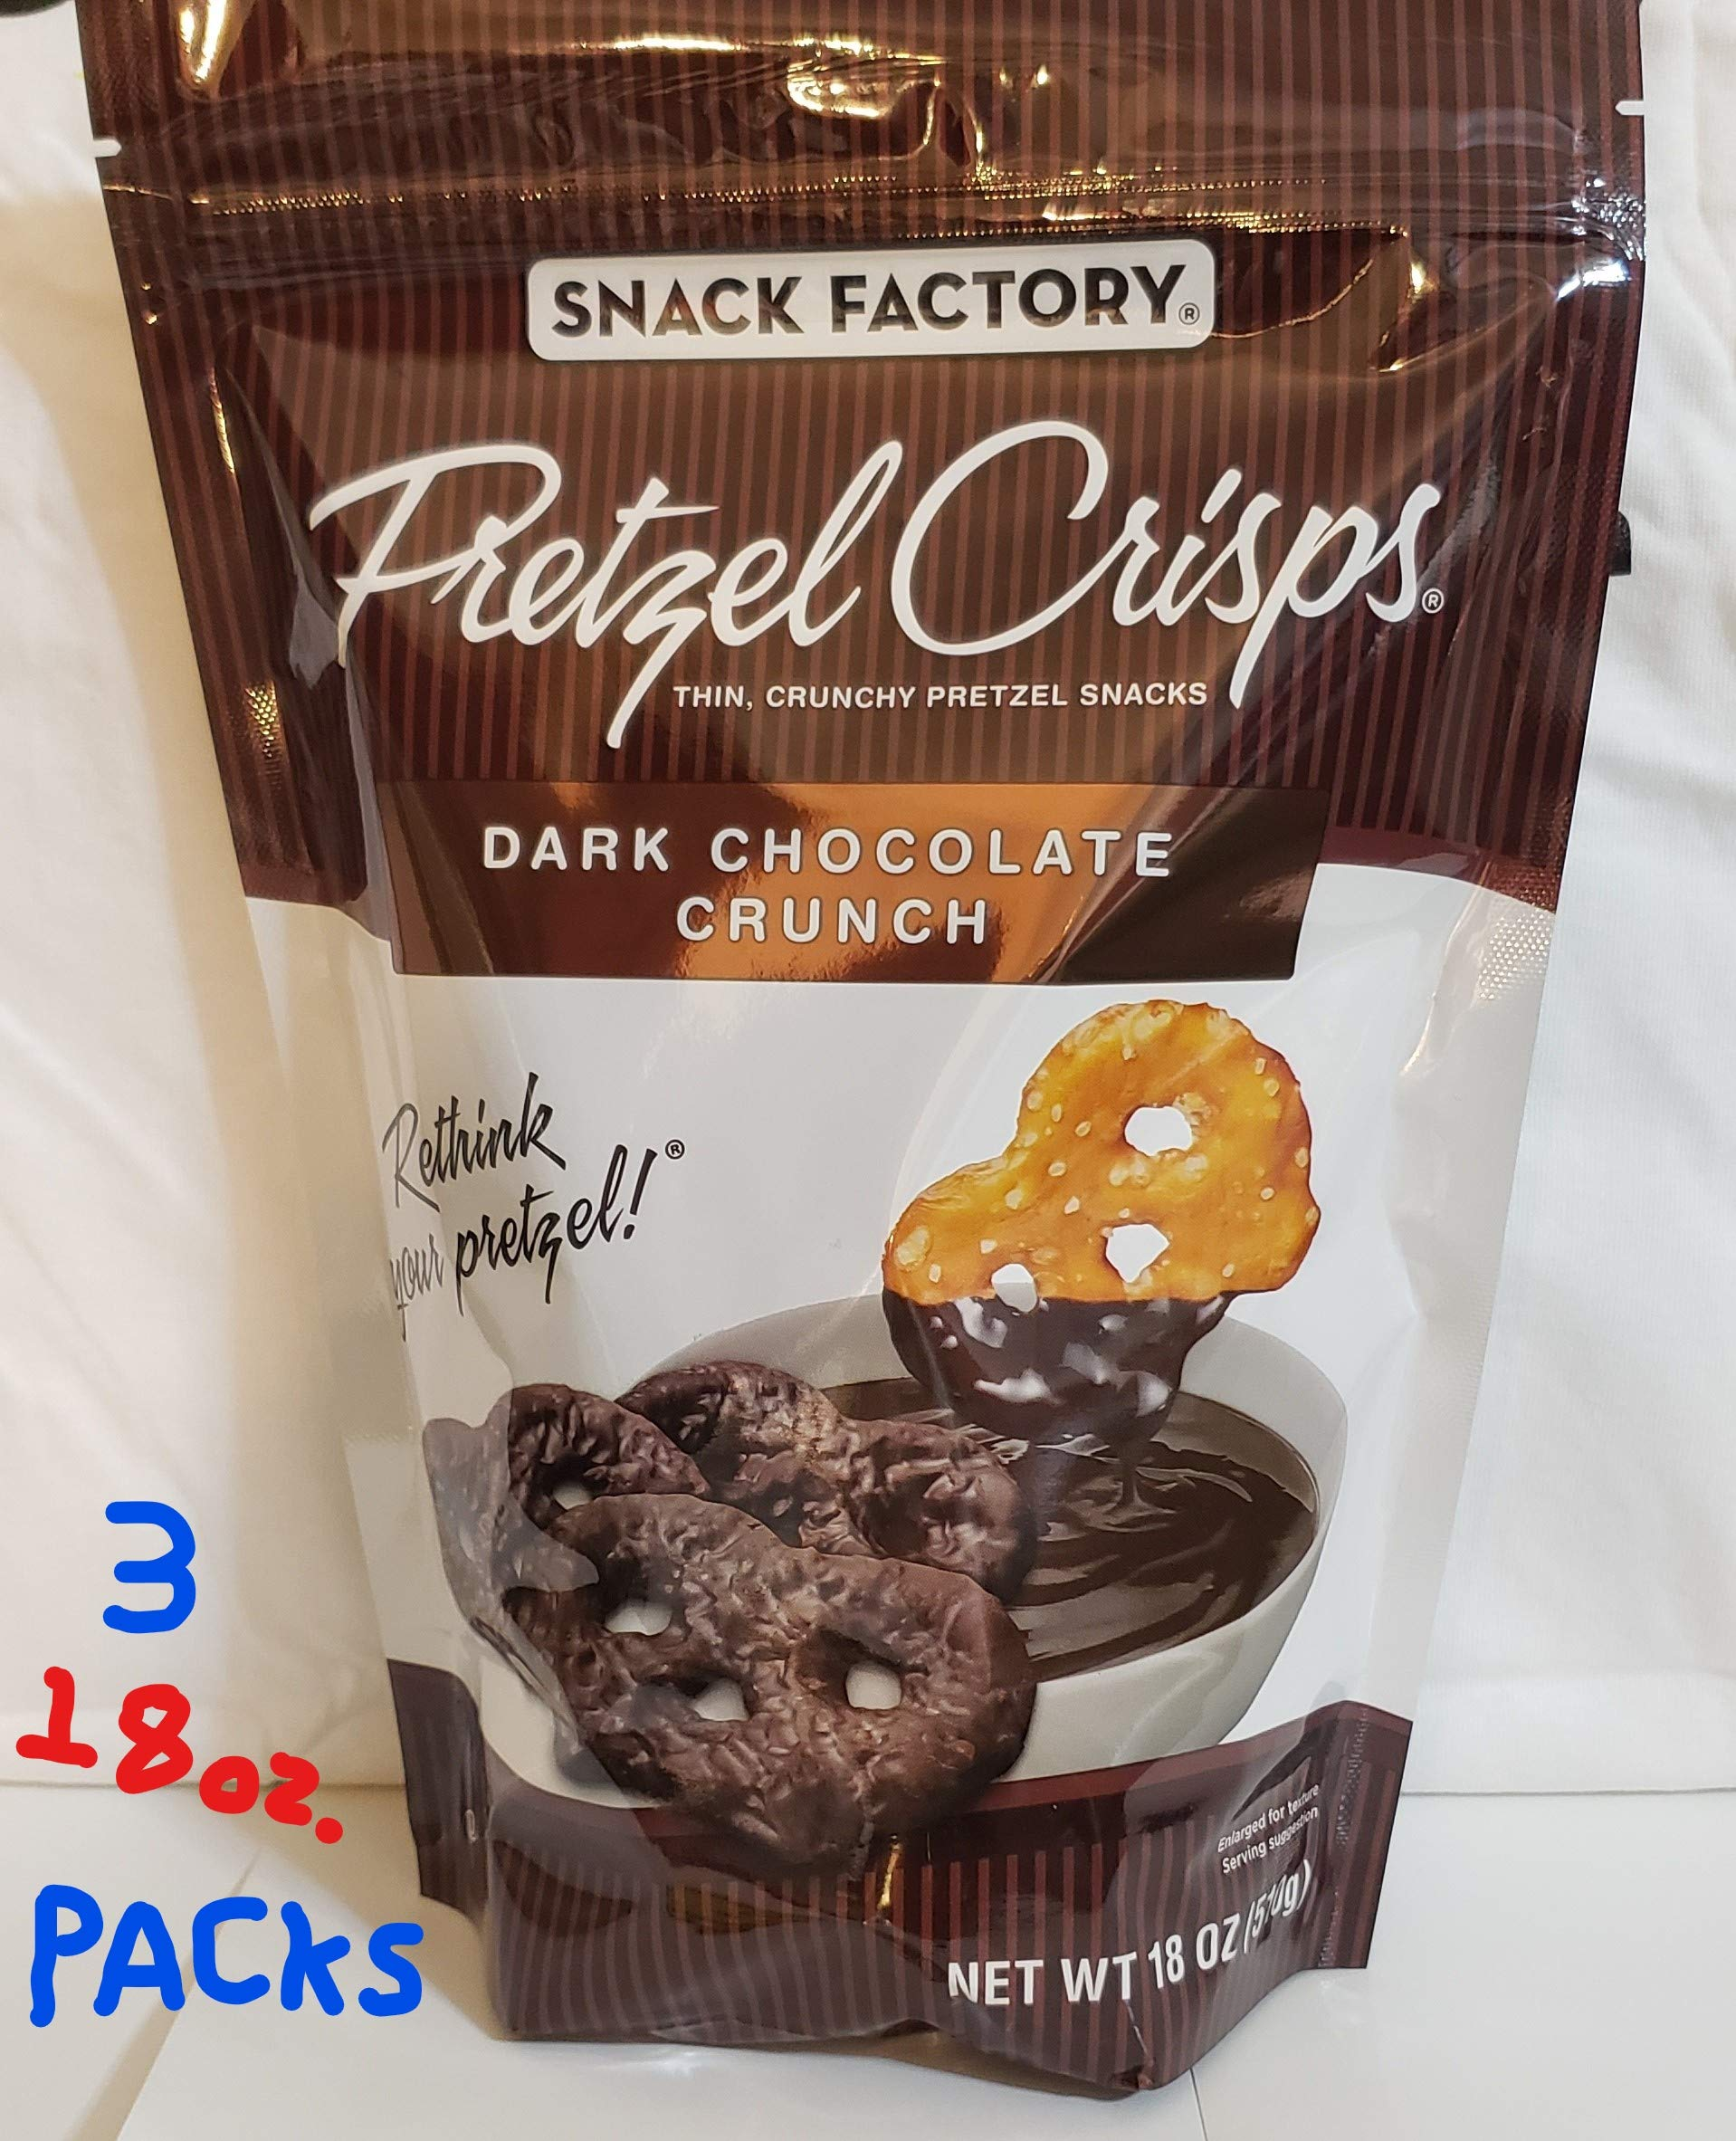 Snack Factory Pretzel Crisps, Dark Chocolate Crunch, 22 Oz. (Pack of 2) by Snack Factory Pretzel Crisps